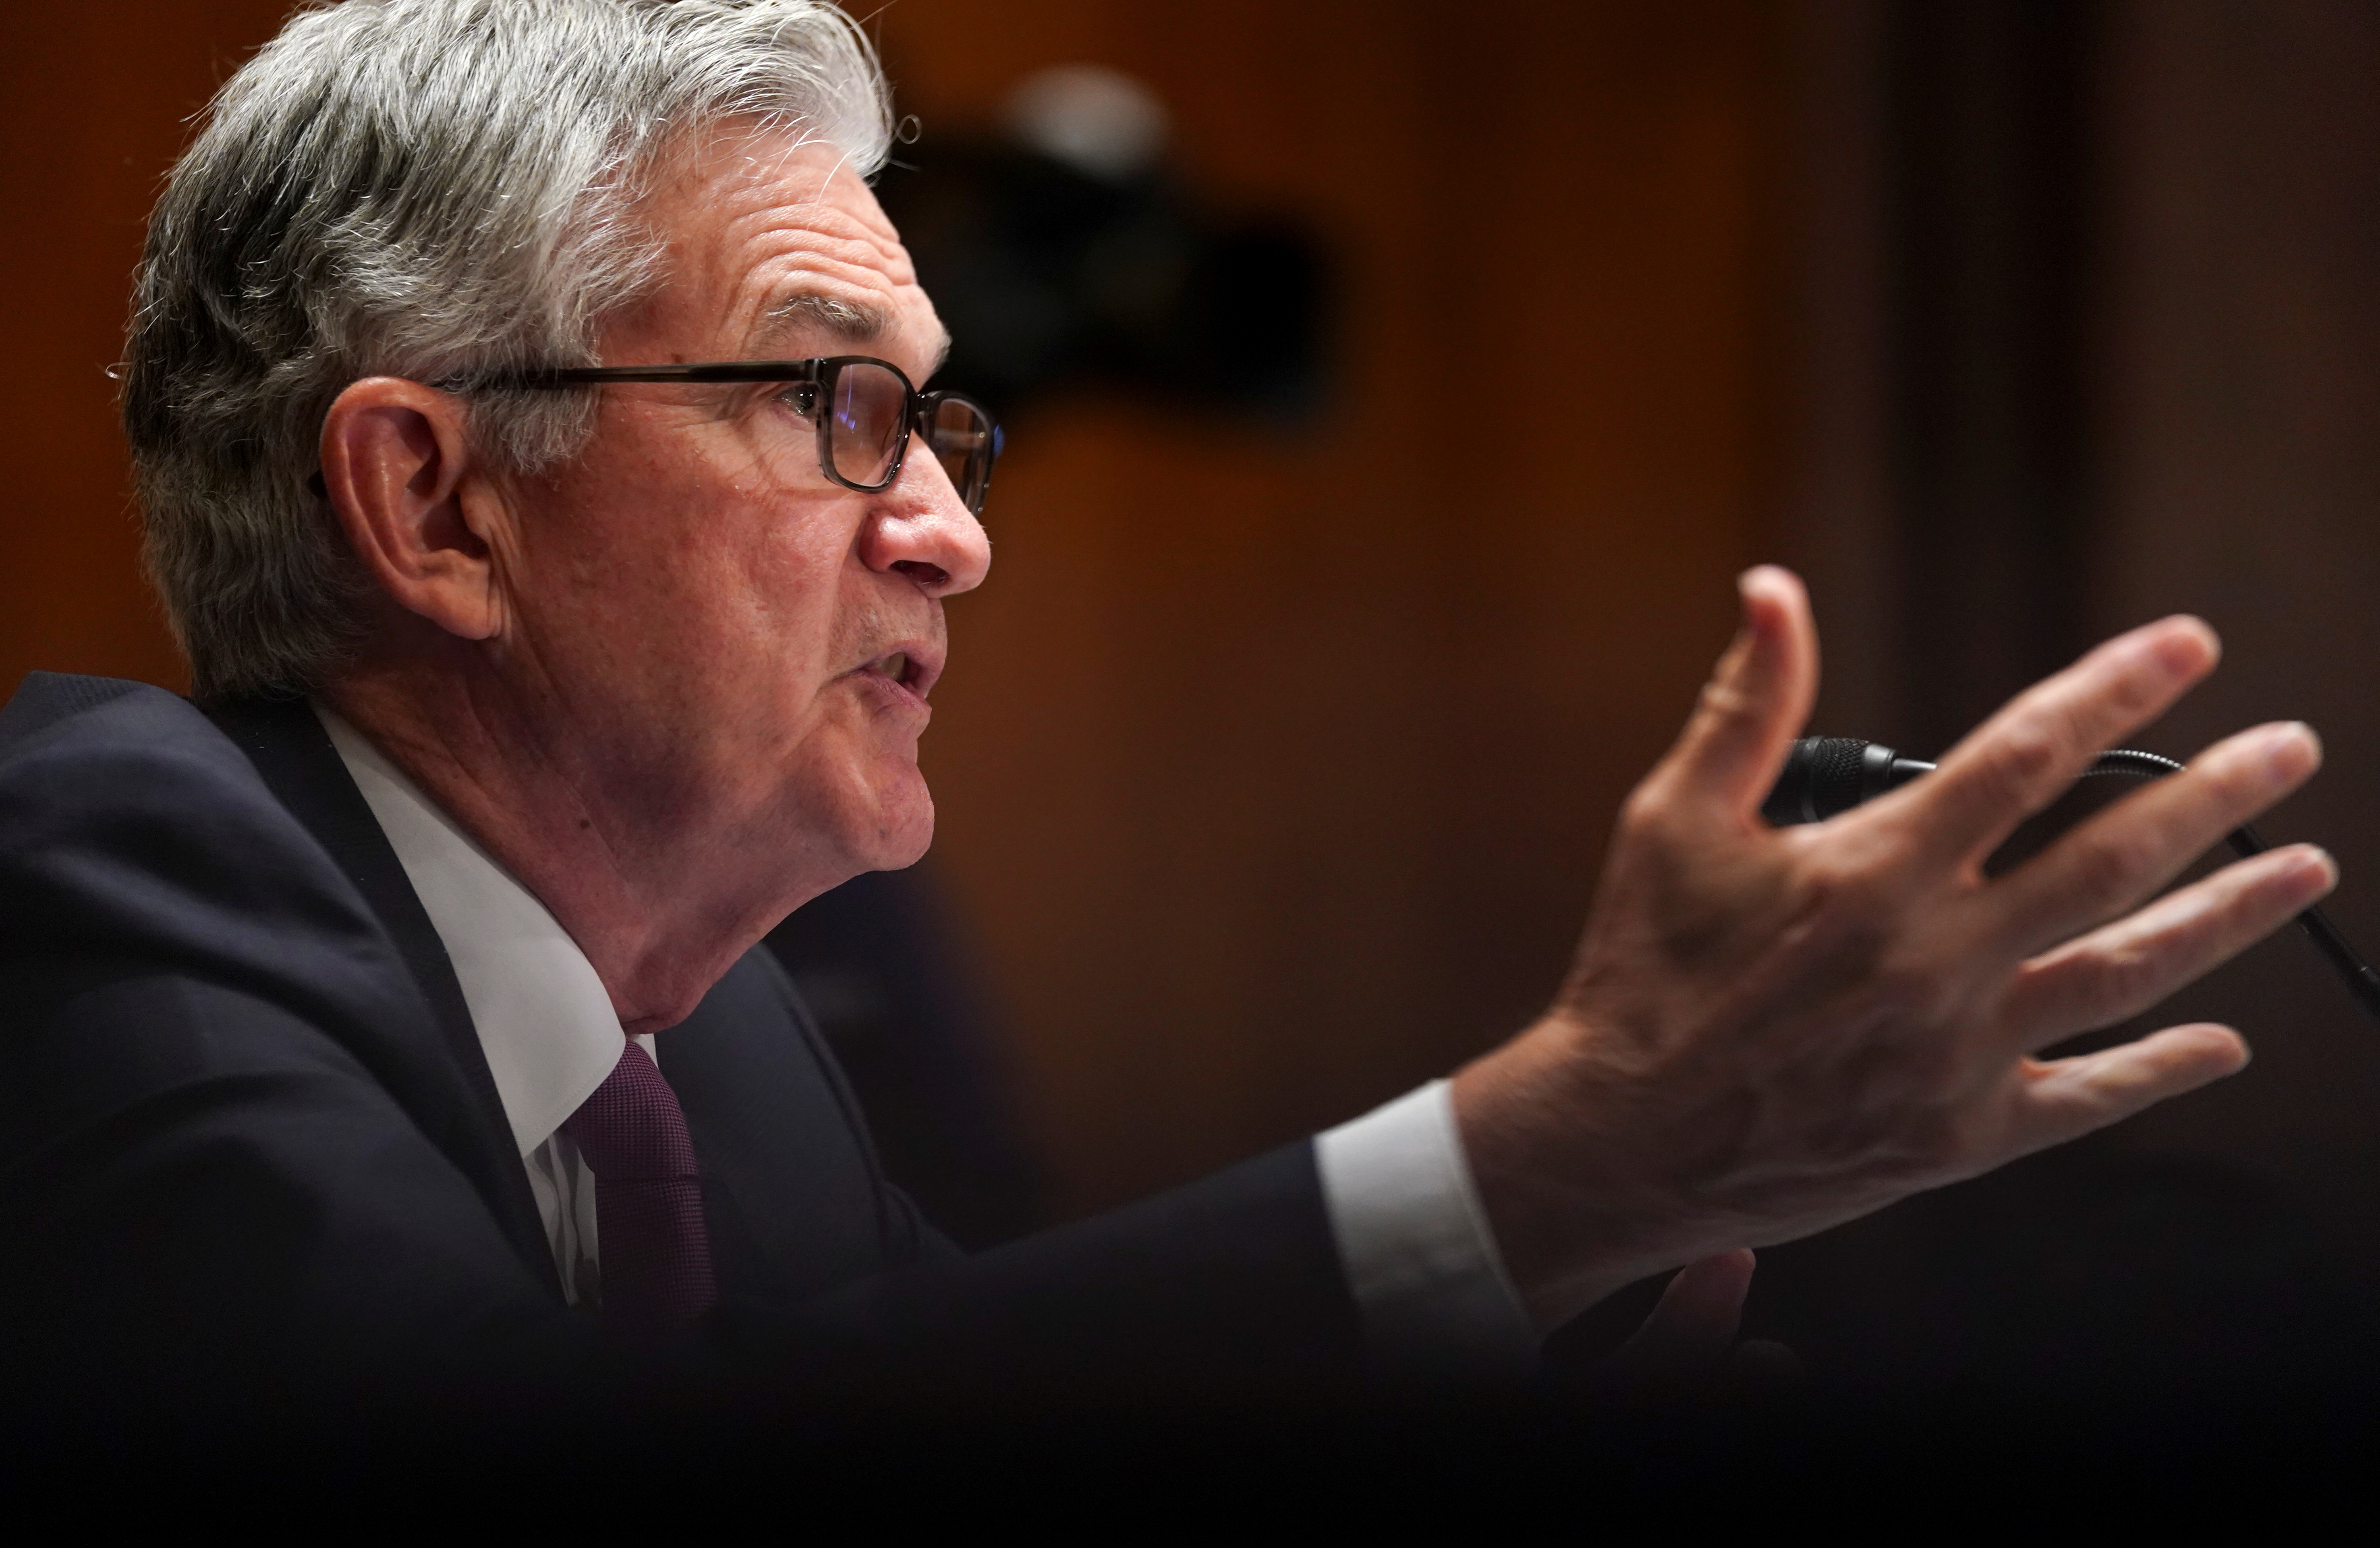 Federal Reserve Chair Jerome Powell testifies before a Senate Banking, Housing and Urban Affairs Committee hearing on